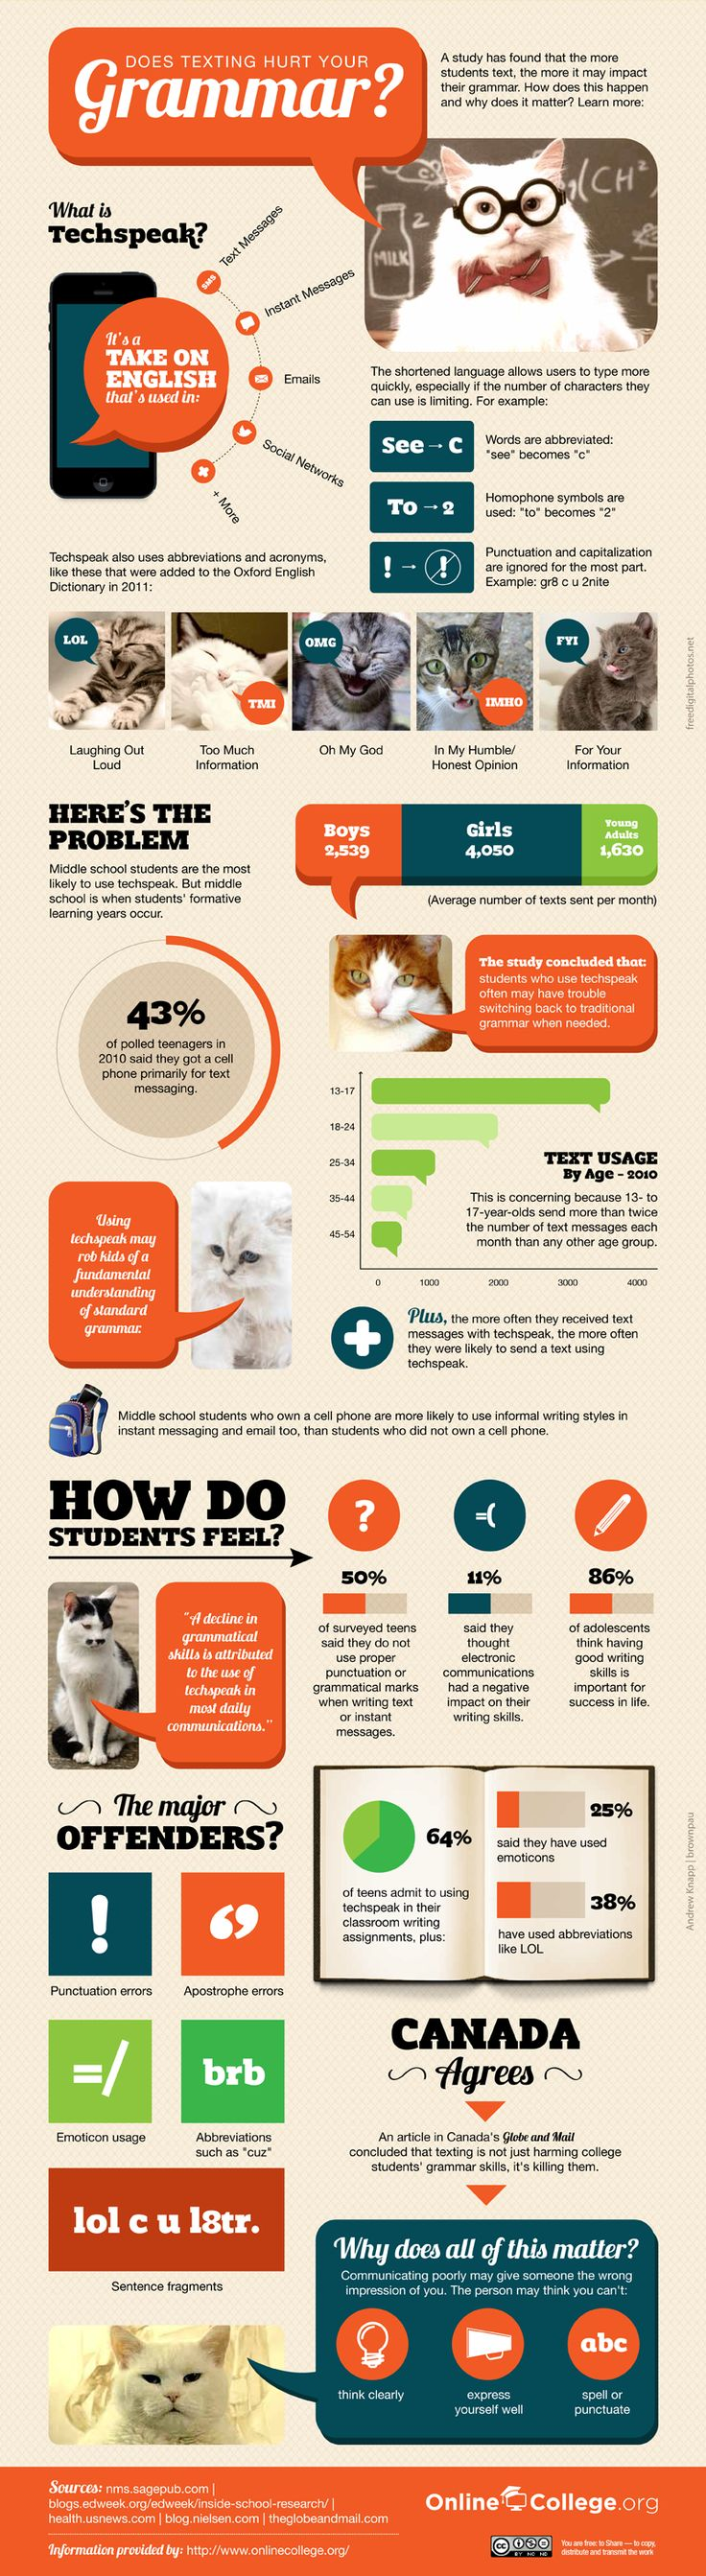 Infographic: Does Texting Hurt Your Grammar?